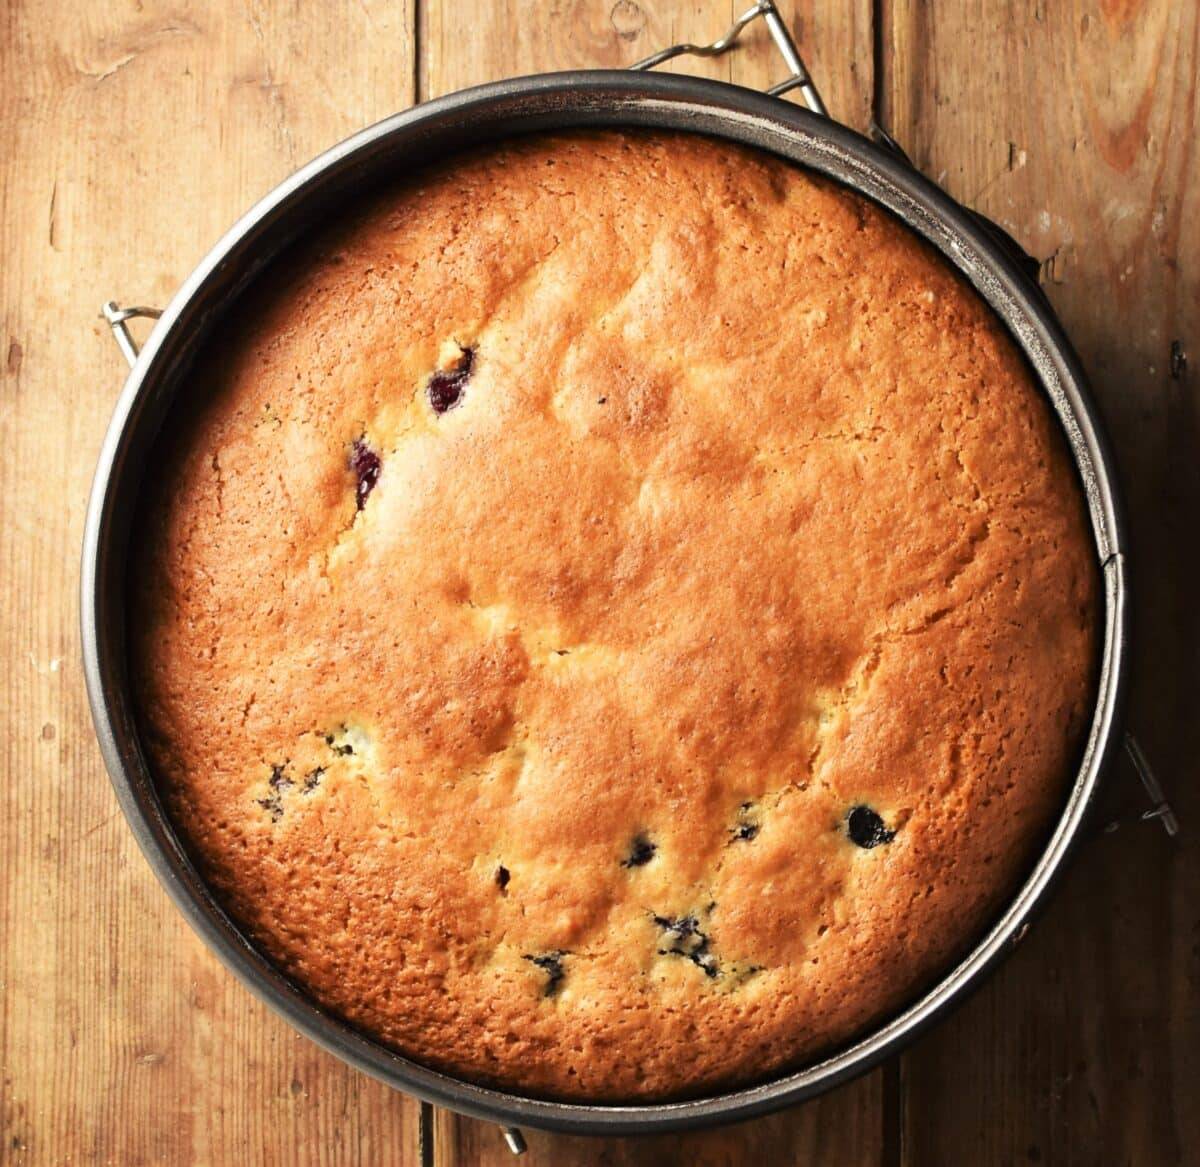 Baked blueberry cake in pan.